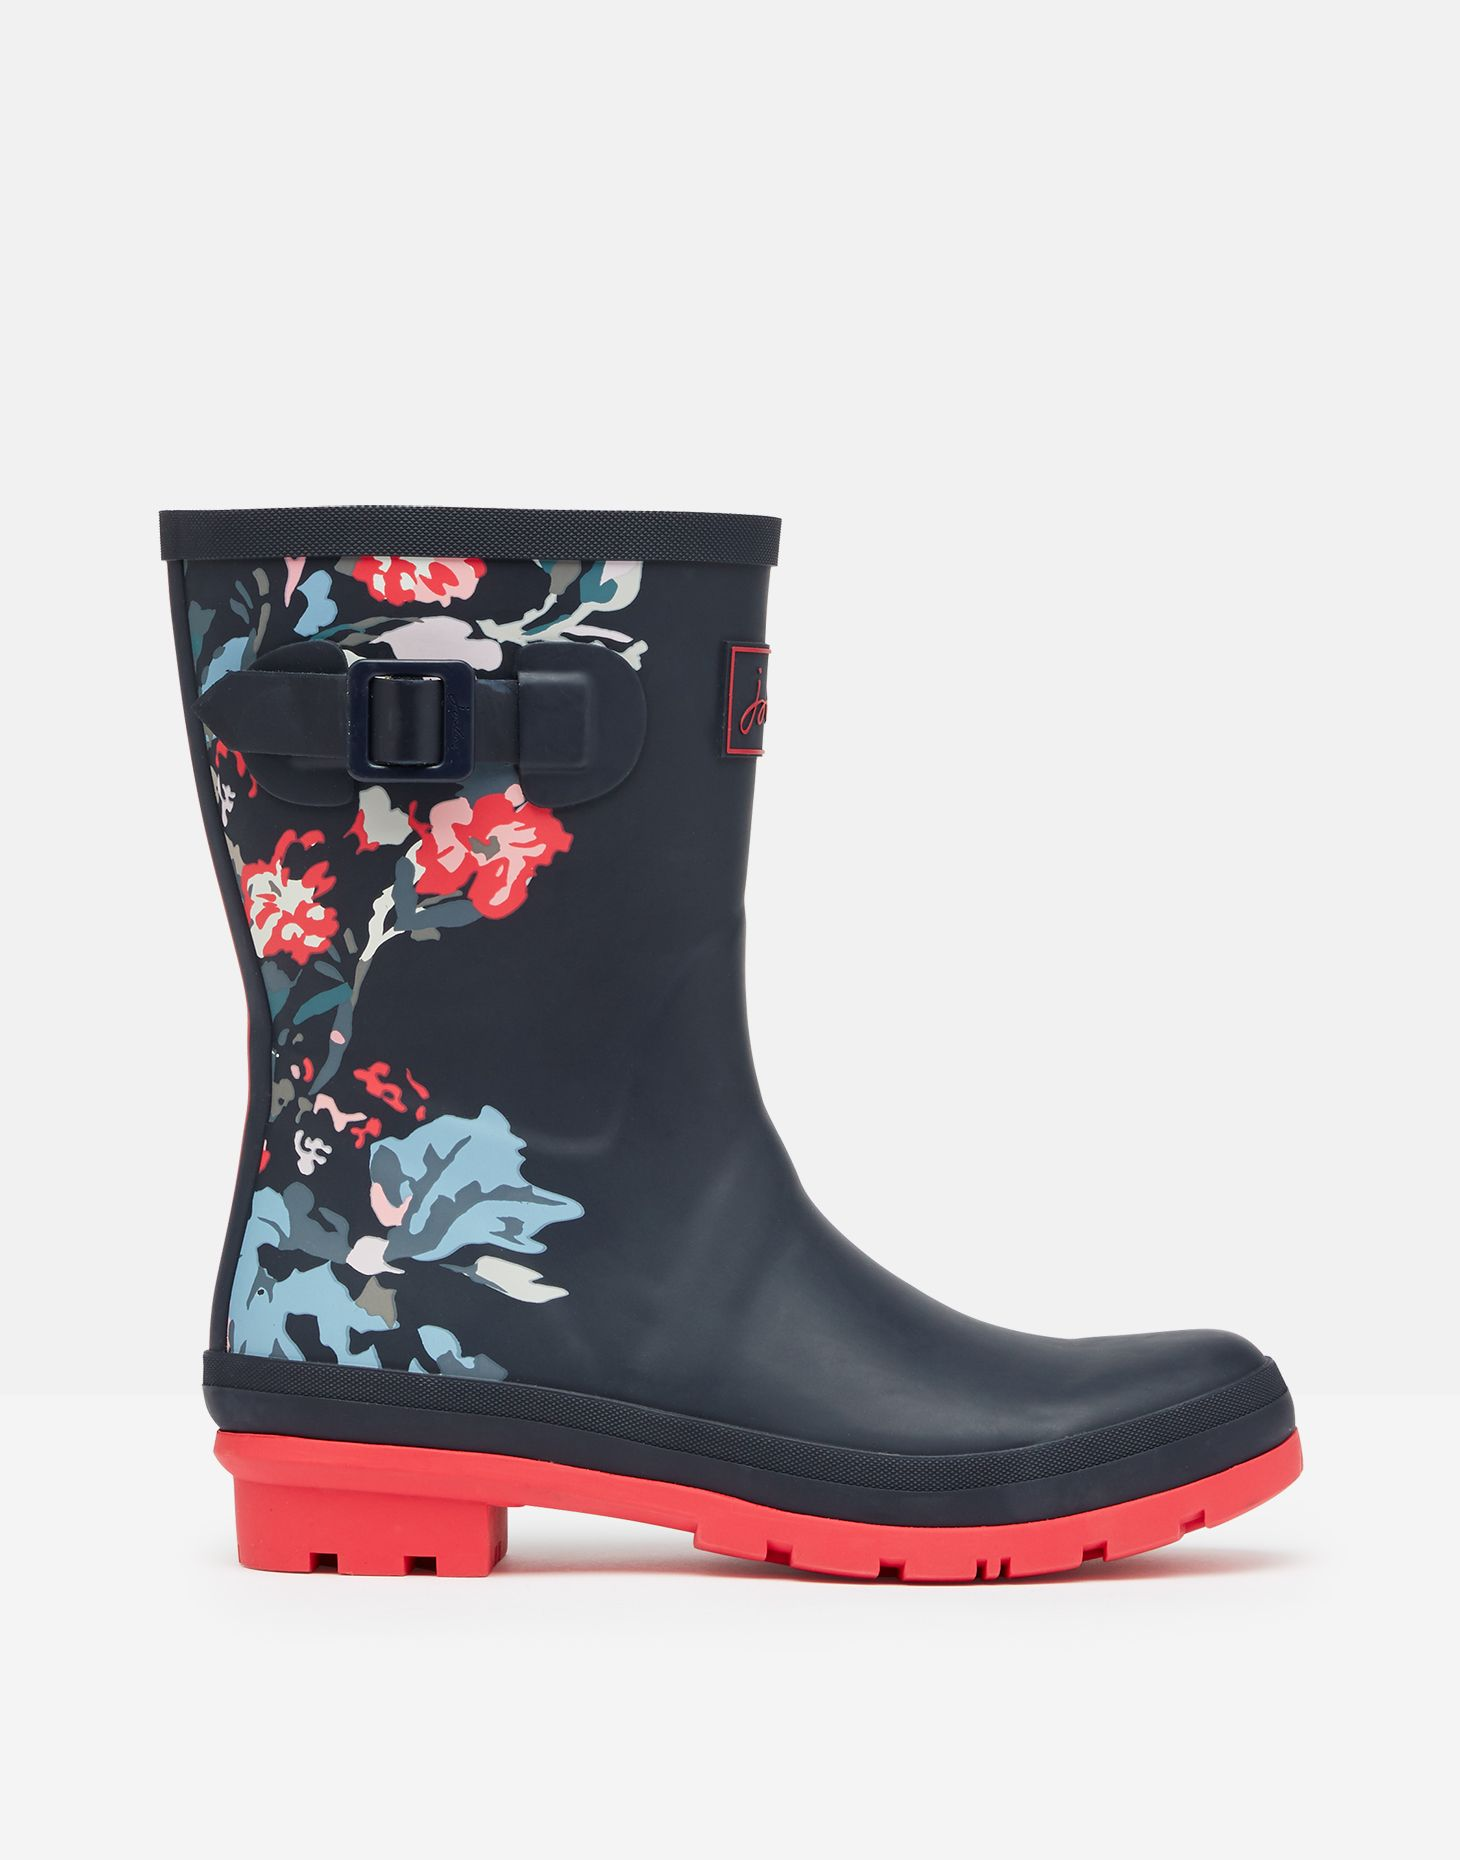 Joules Molly Welly Navy All Over Floral Mid Height Wellingtons Wellies Box Sz 3